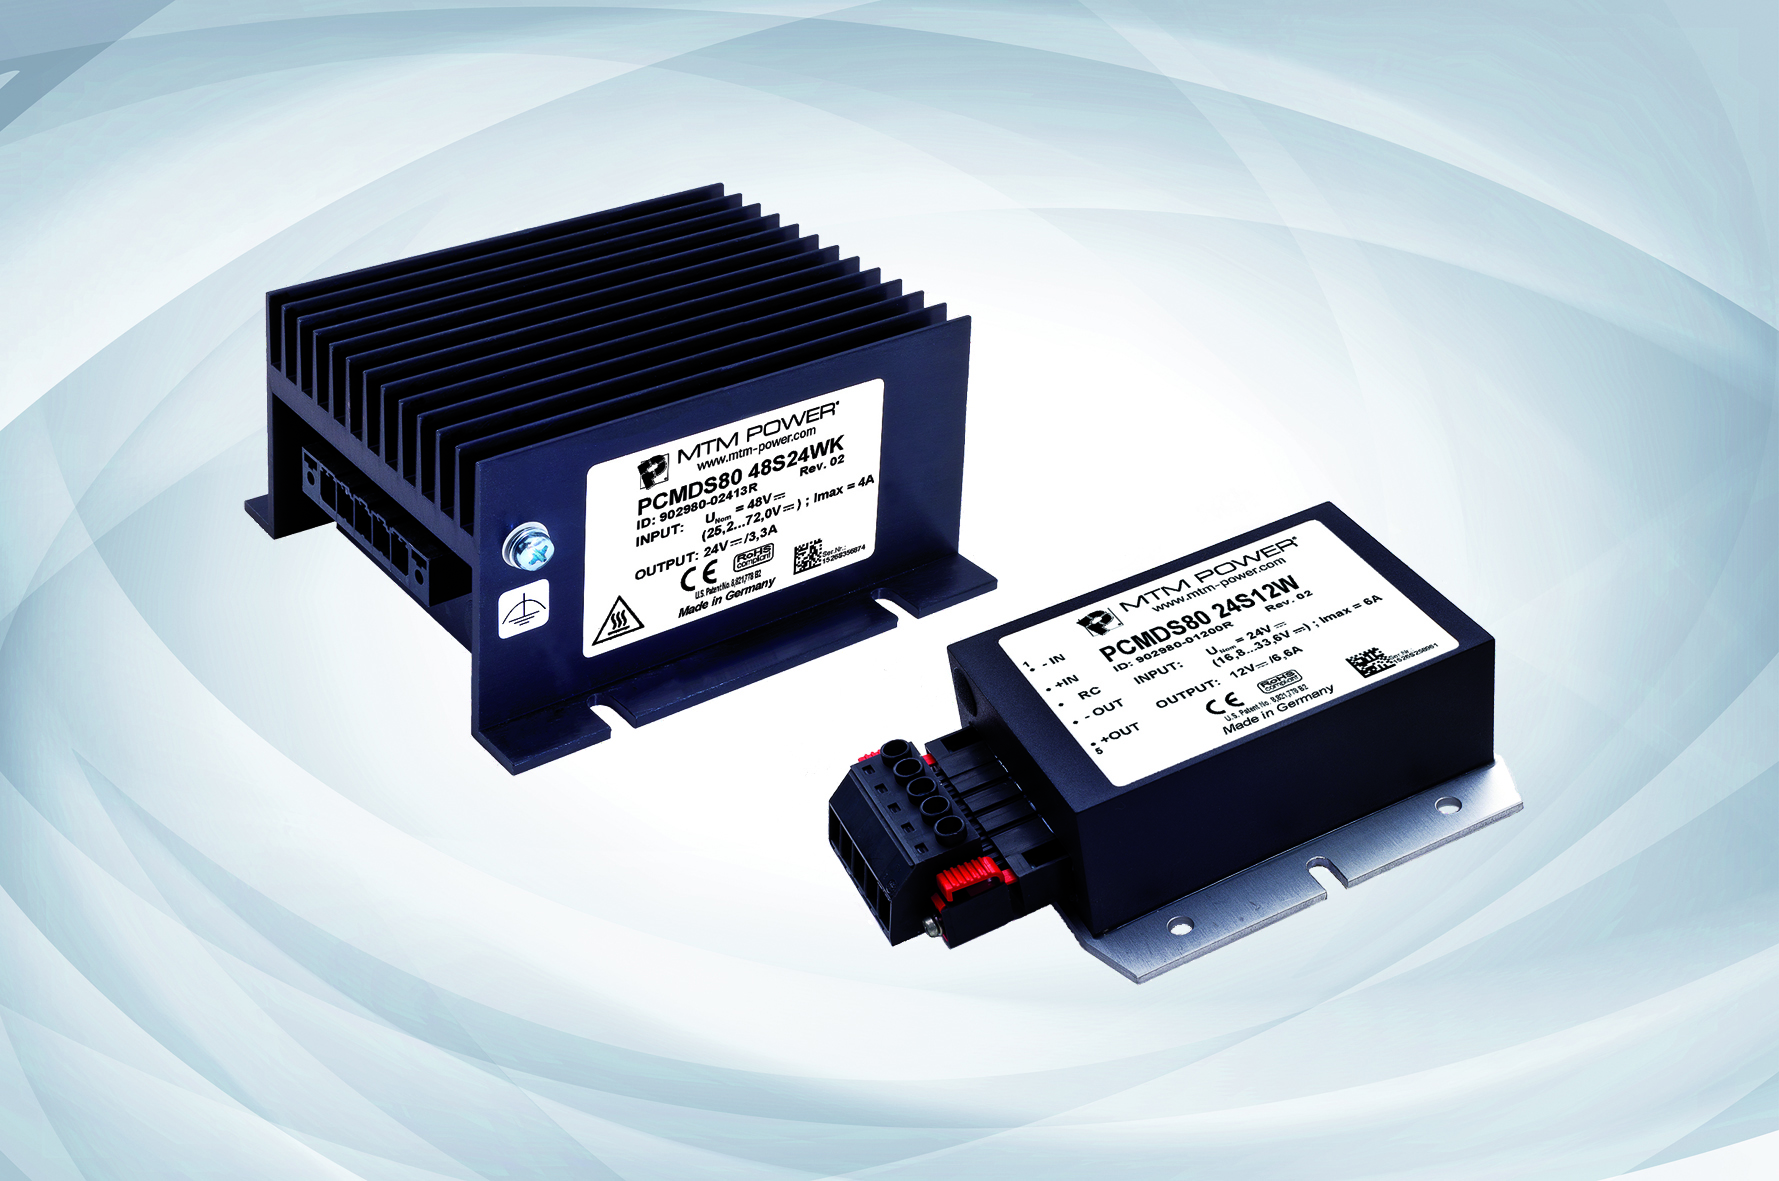 Press Releases Potato Battery Dc Circuits Electronics Textbook The Converters Pcmds80 From Mtm Power Are Specially Designed As Decentralised Supplies In Vehicles And For Supplying Closed Sub Systems